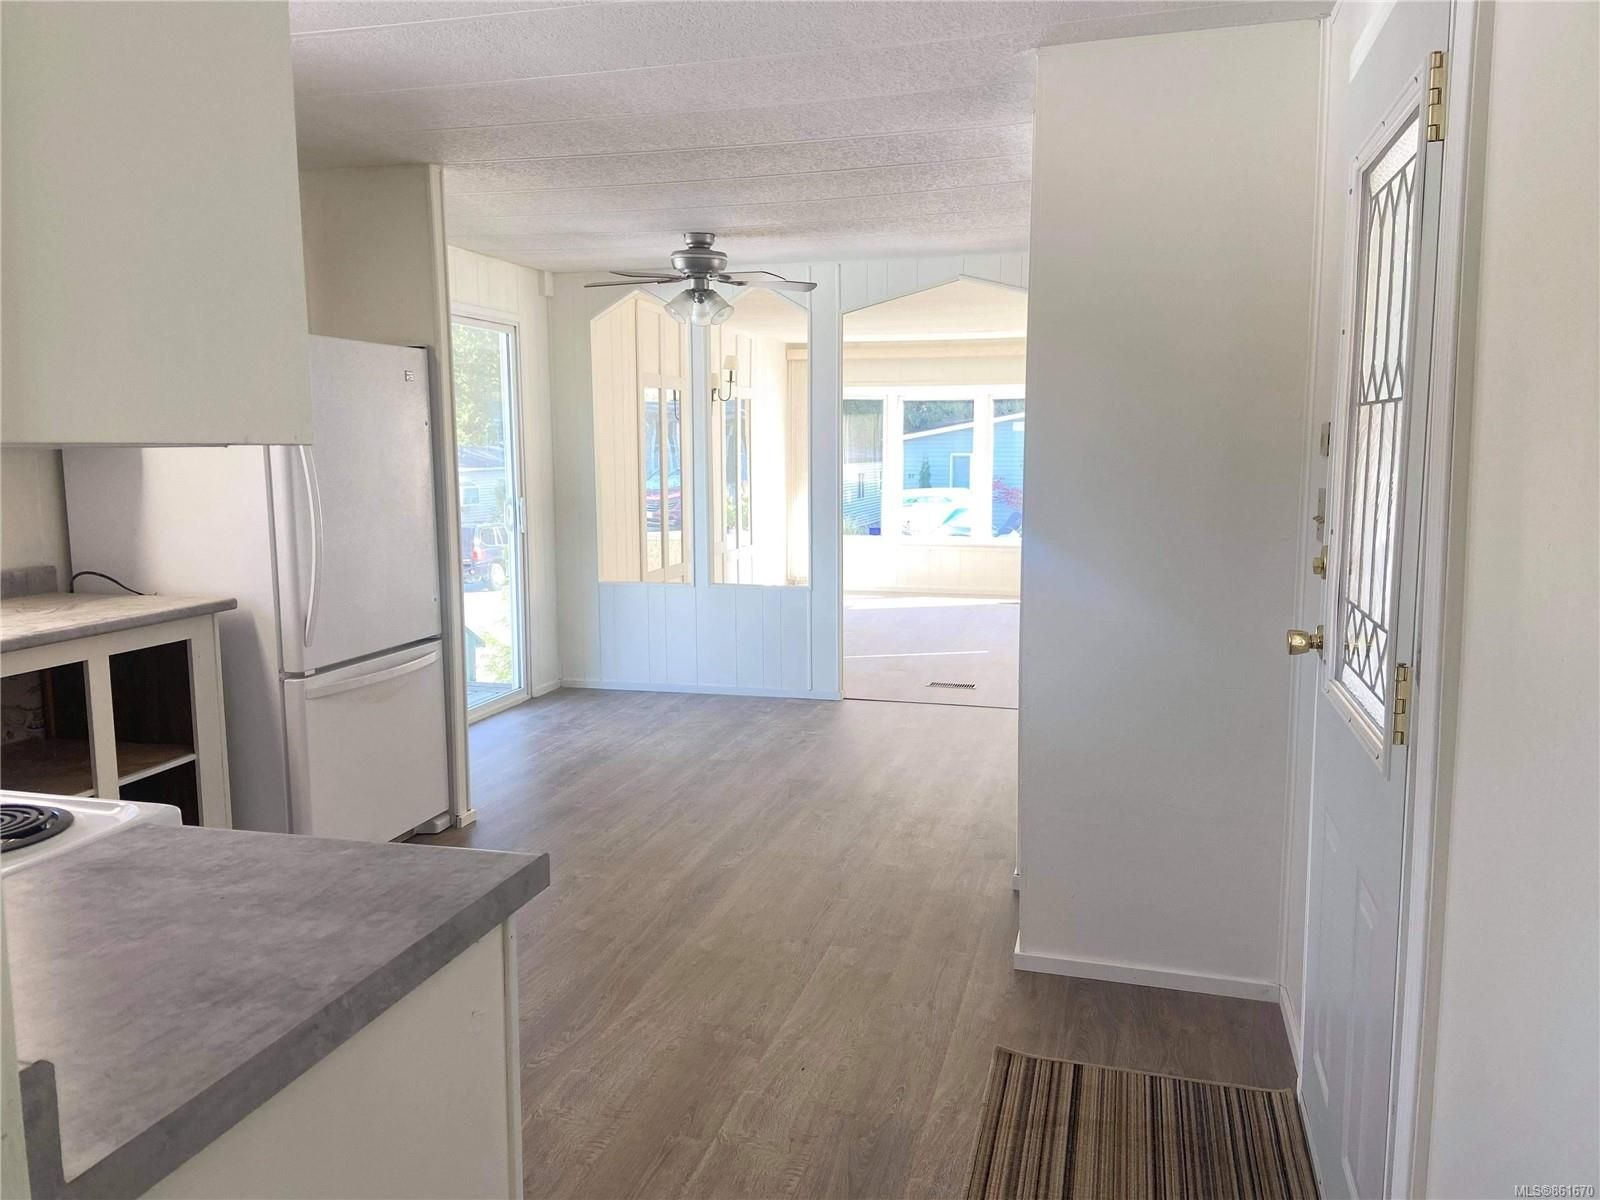 Photo 3: Photos: 23 541 Jim Cram Dr in : Du Ladysmith Manufactured Home for sale (Duncan)  : MLS®# 861670